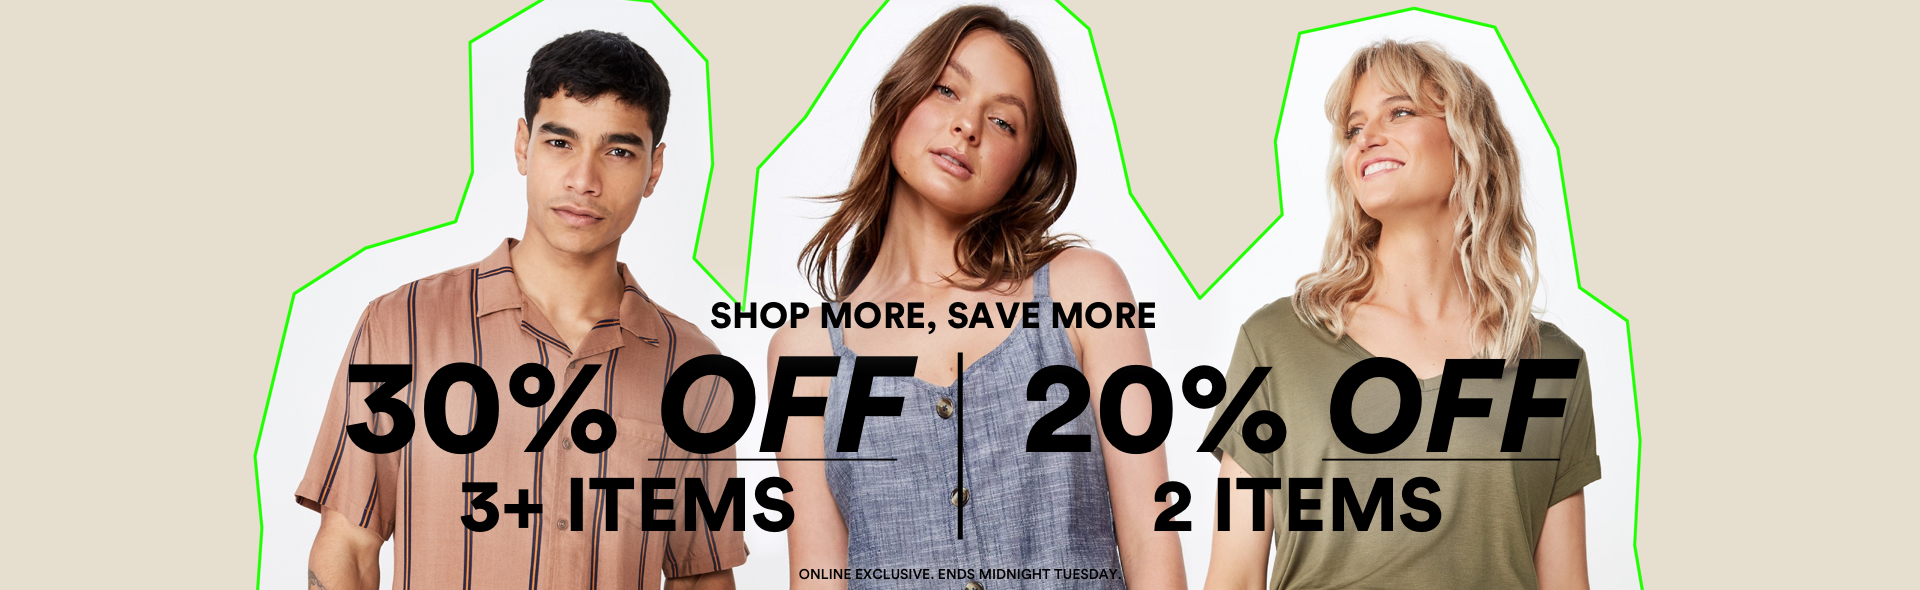 Shop More Save More. 30% off 3 or more items. 20% off 2 or more items. Click to Shop.